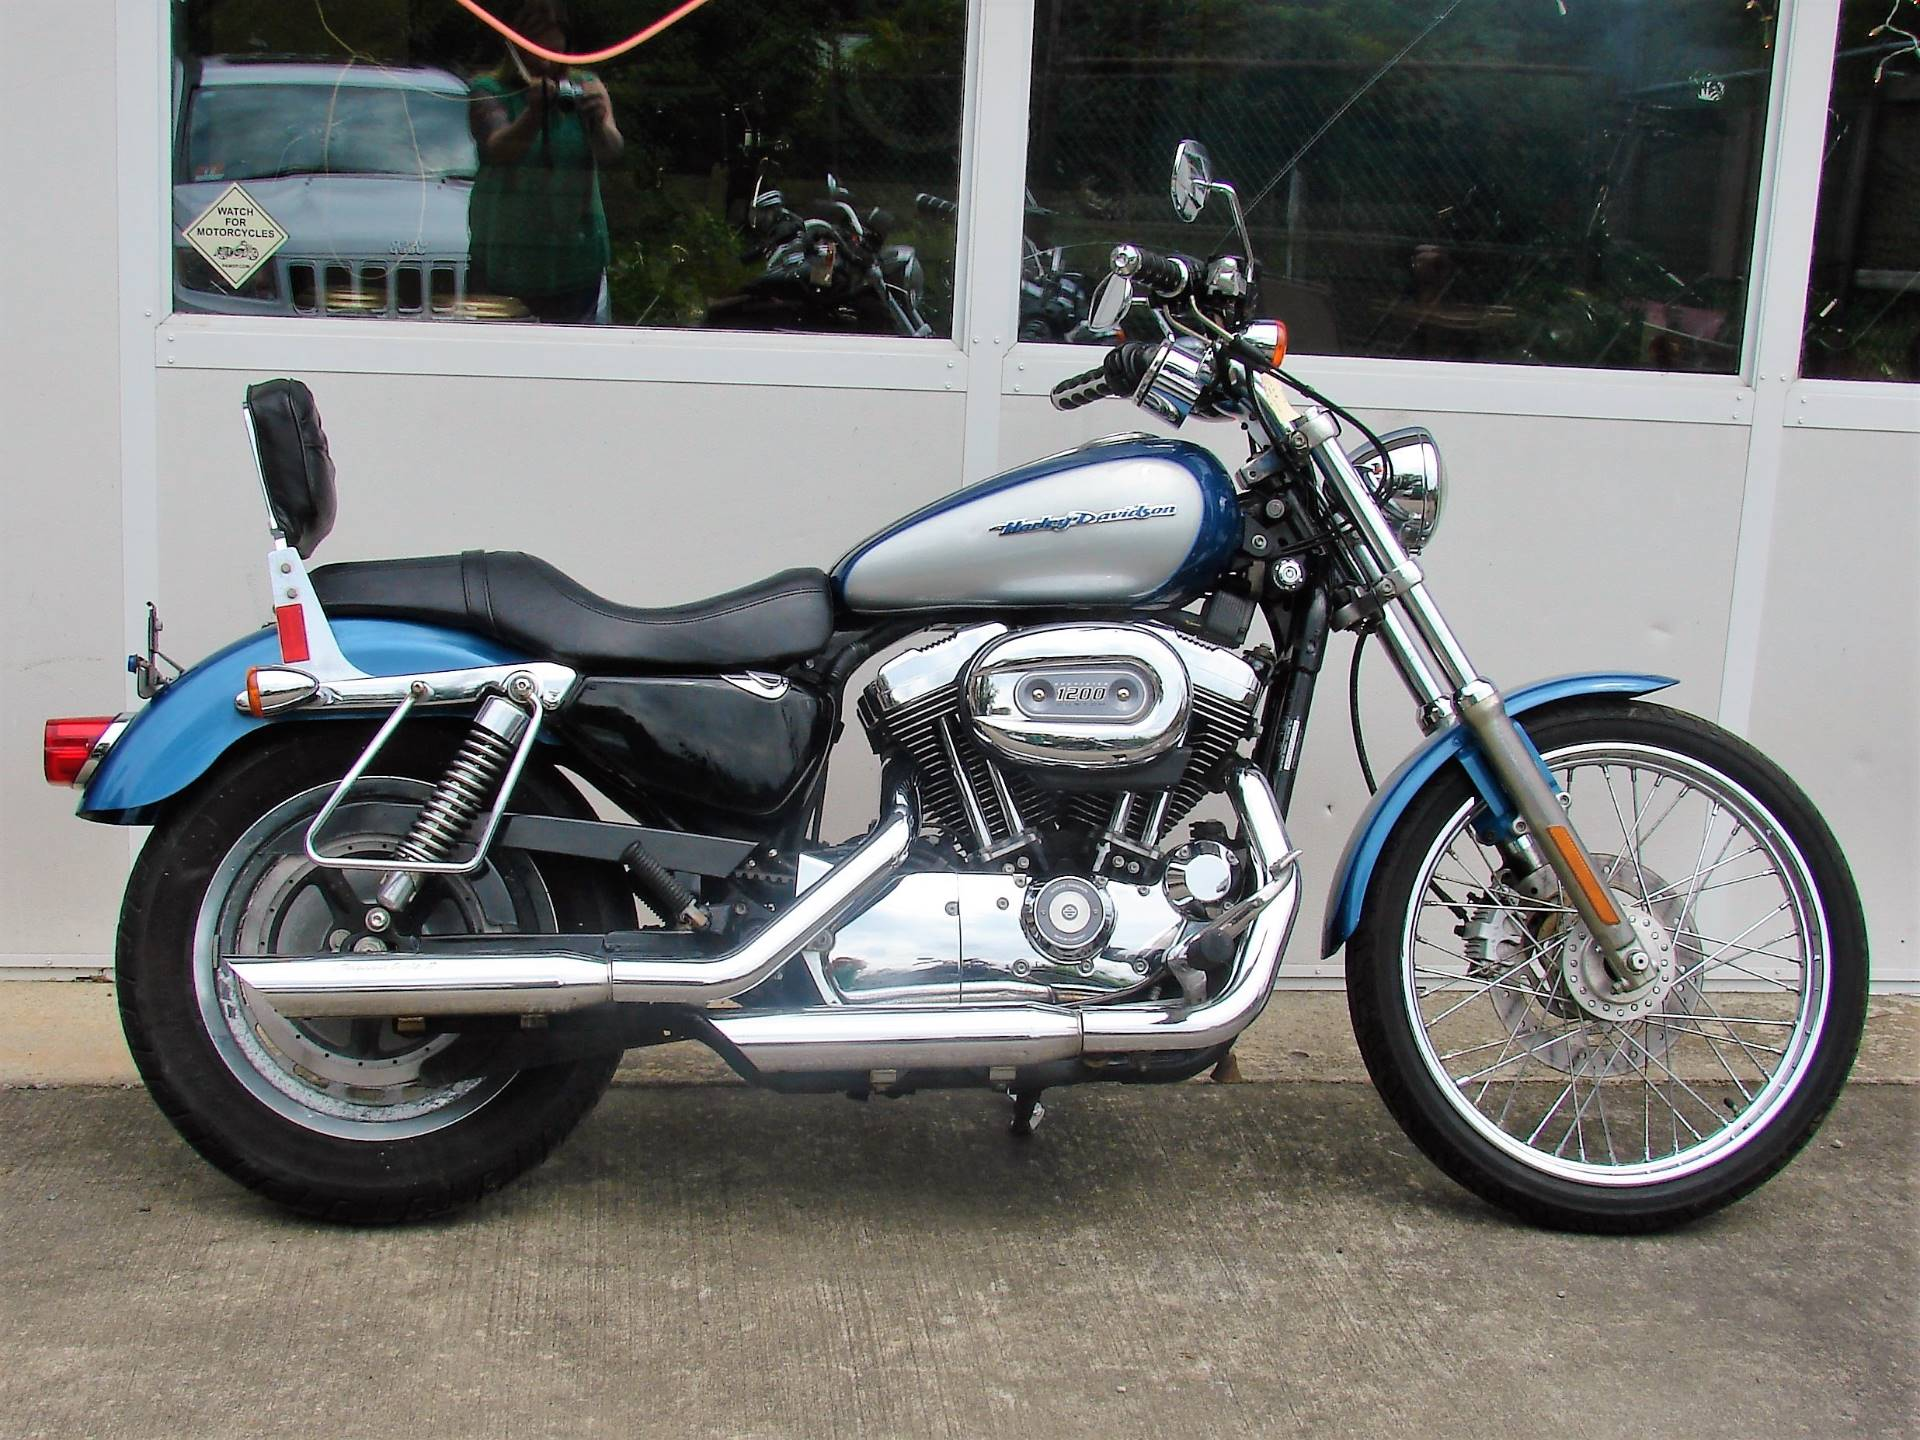 2005 Harley-Davidson Sportster® XL 1200 Custom in Williamstown, New Jersey - Photo 11